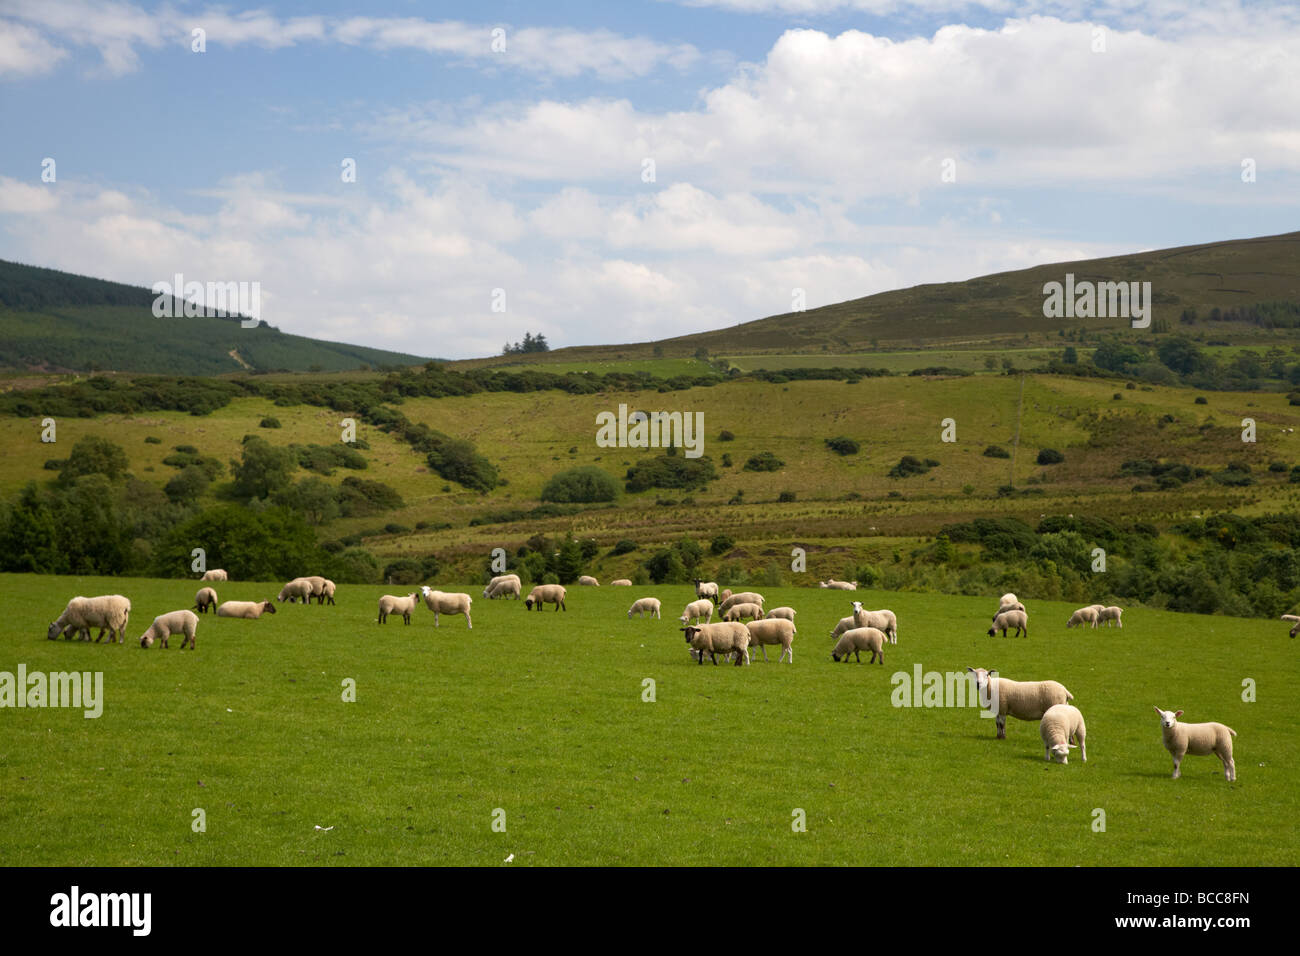 flock of sheep in a field on a hill farm in the sperrin mountains county derry londonderry northern ireland uk - Stock Image